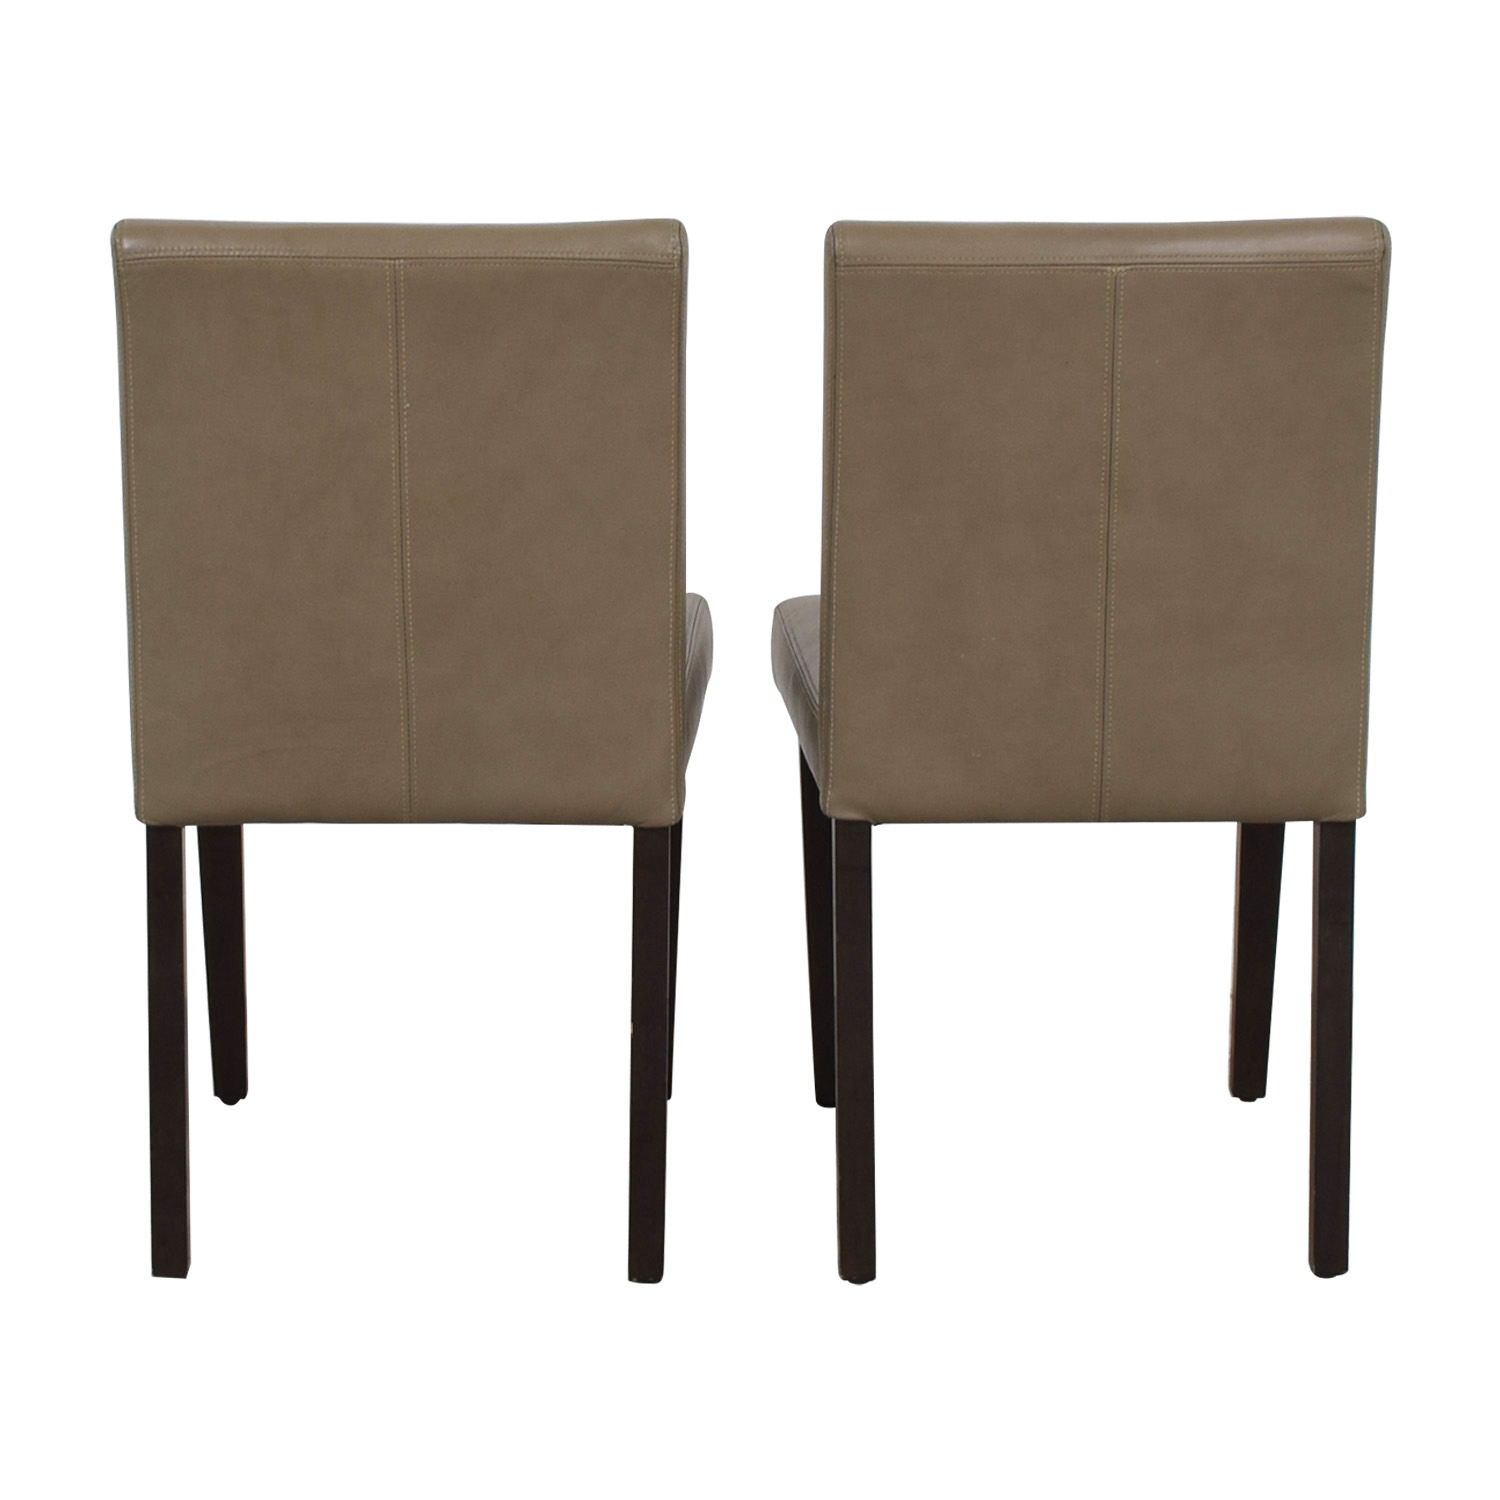 West Elm West Elm Porter Taupe Leather Dining Chairs price